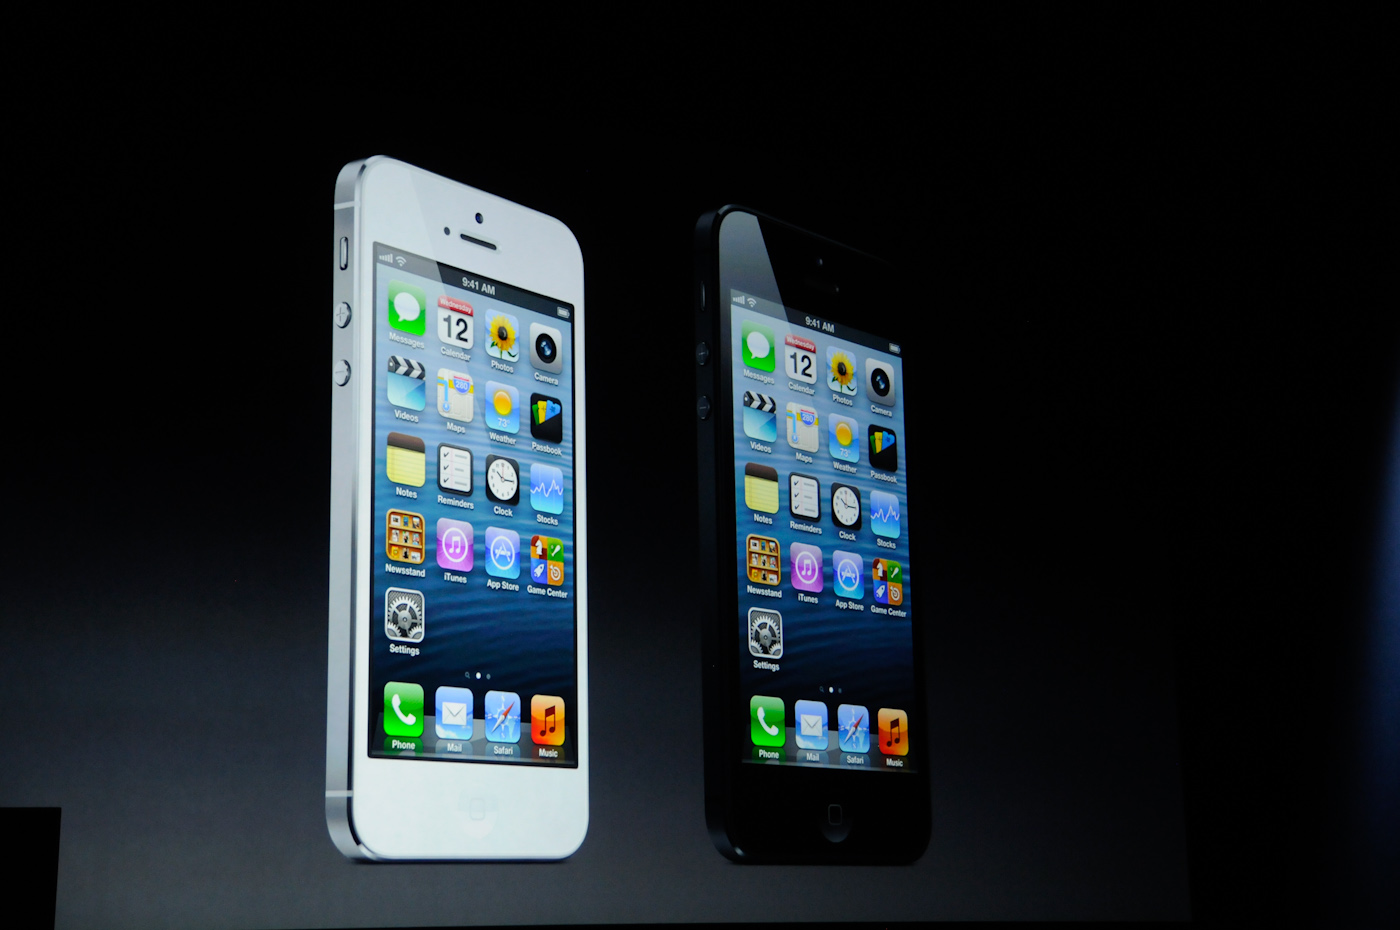 new apple iphone 5 wallpapers new apple iphone 5 wallpapers 1400x930